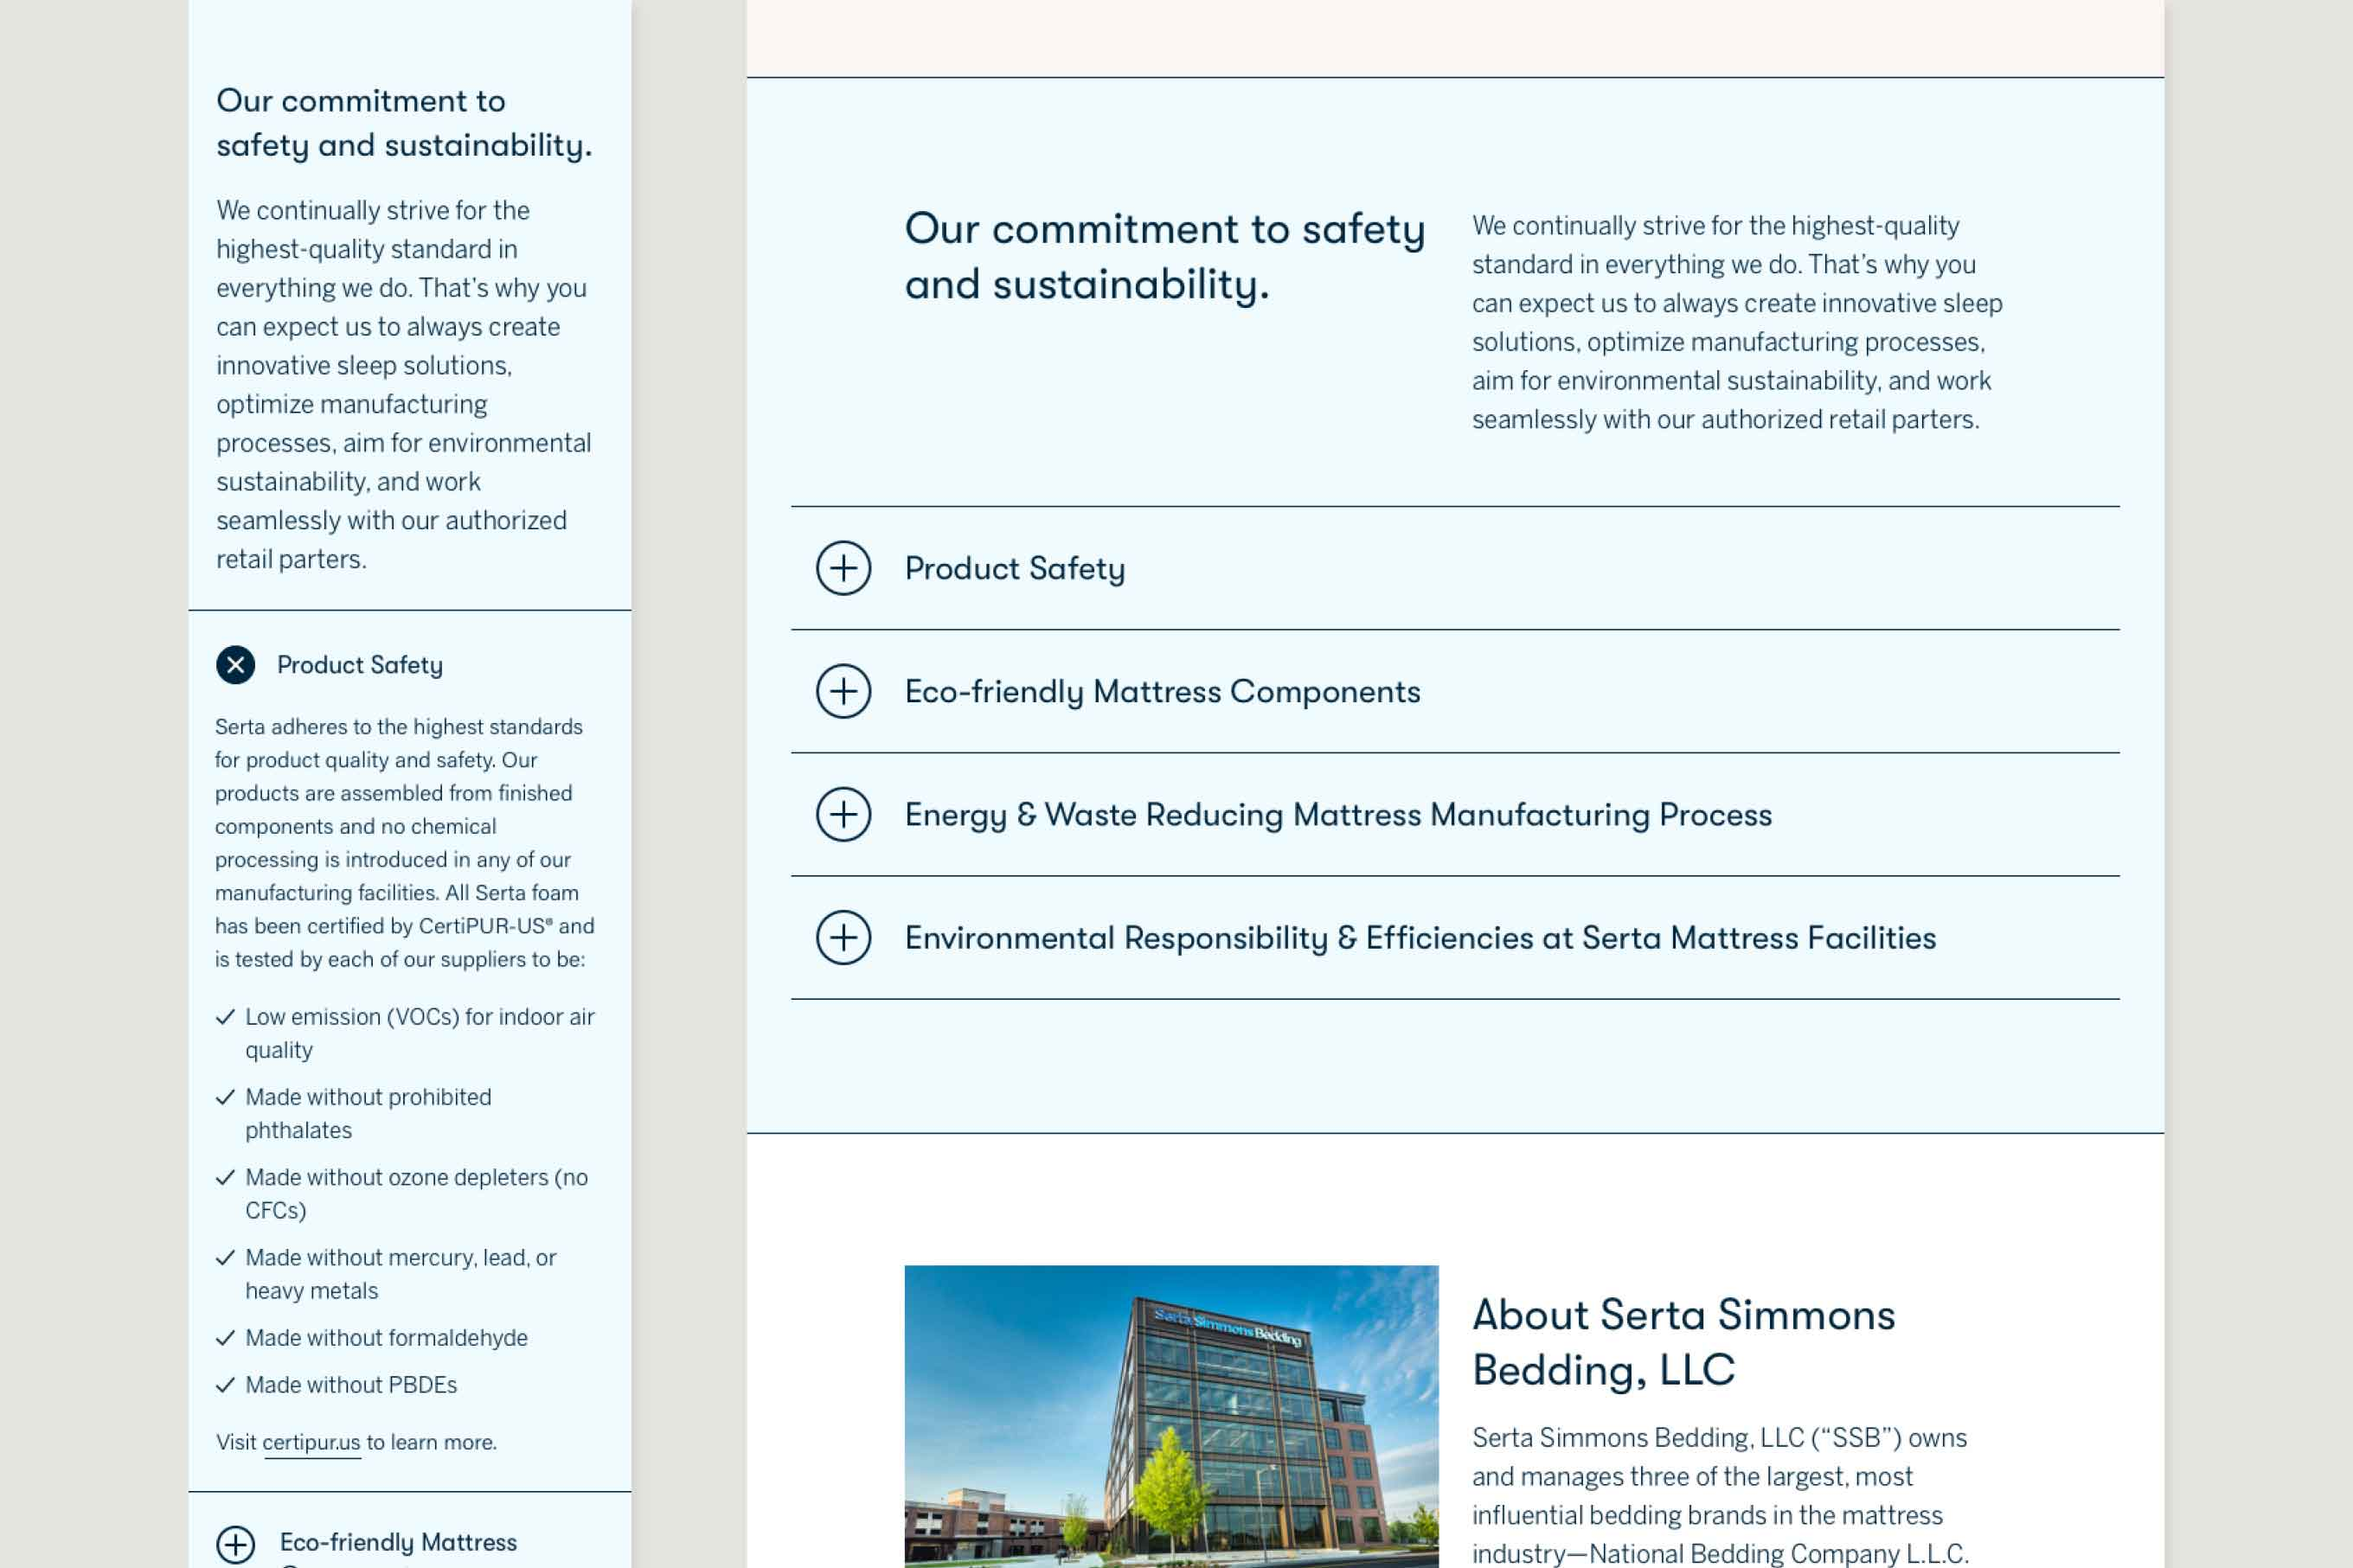 Mobile and desktop comps of the safety & sustainability section of the About page. The section has a blue background and four expandable accordion sections related to safety and sustainability topics.